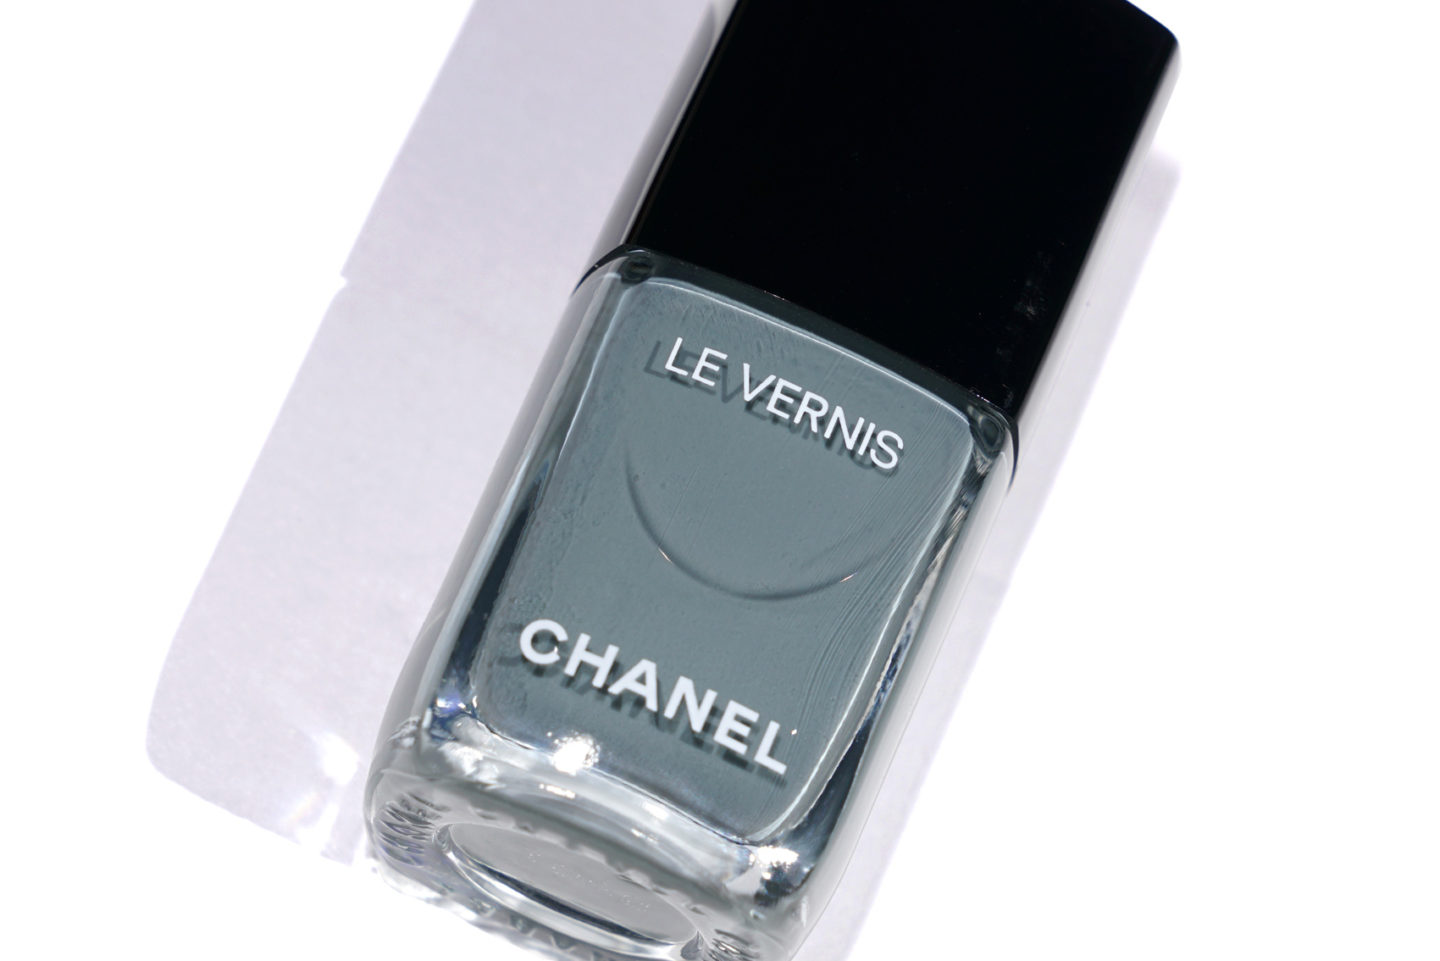 Chanel Le Vernis Washed Denim | The Beauty Look Book